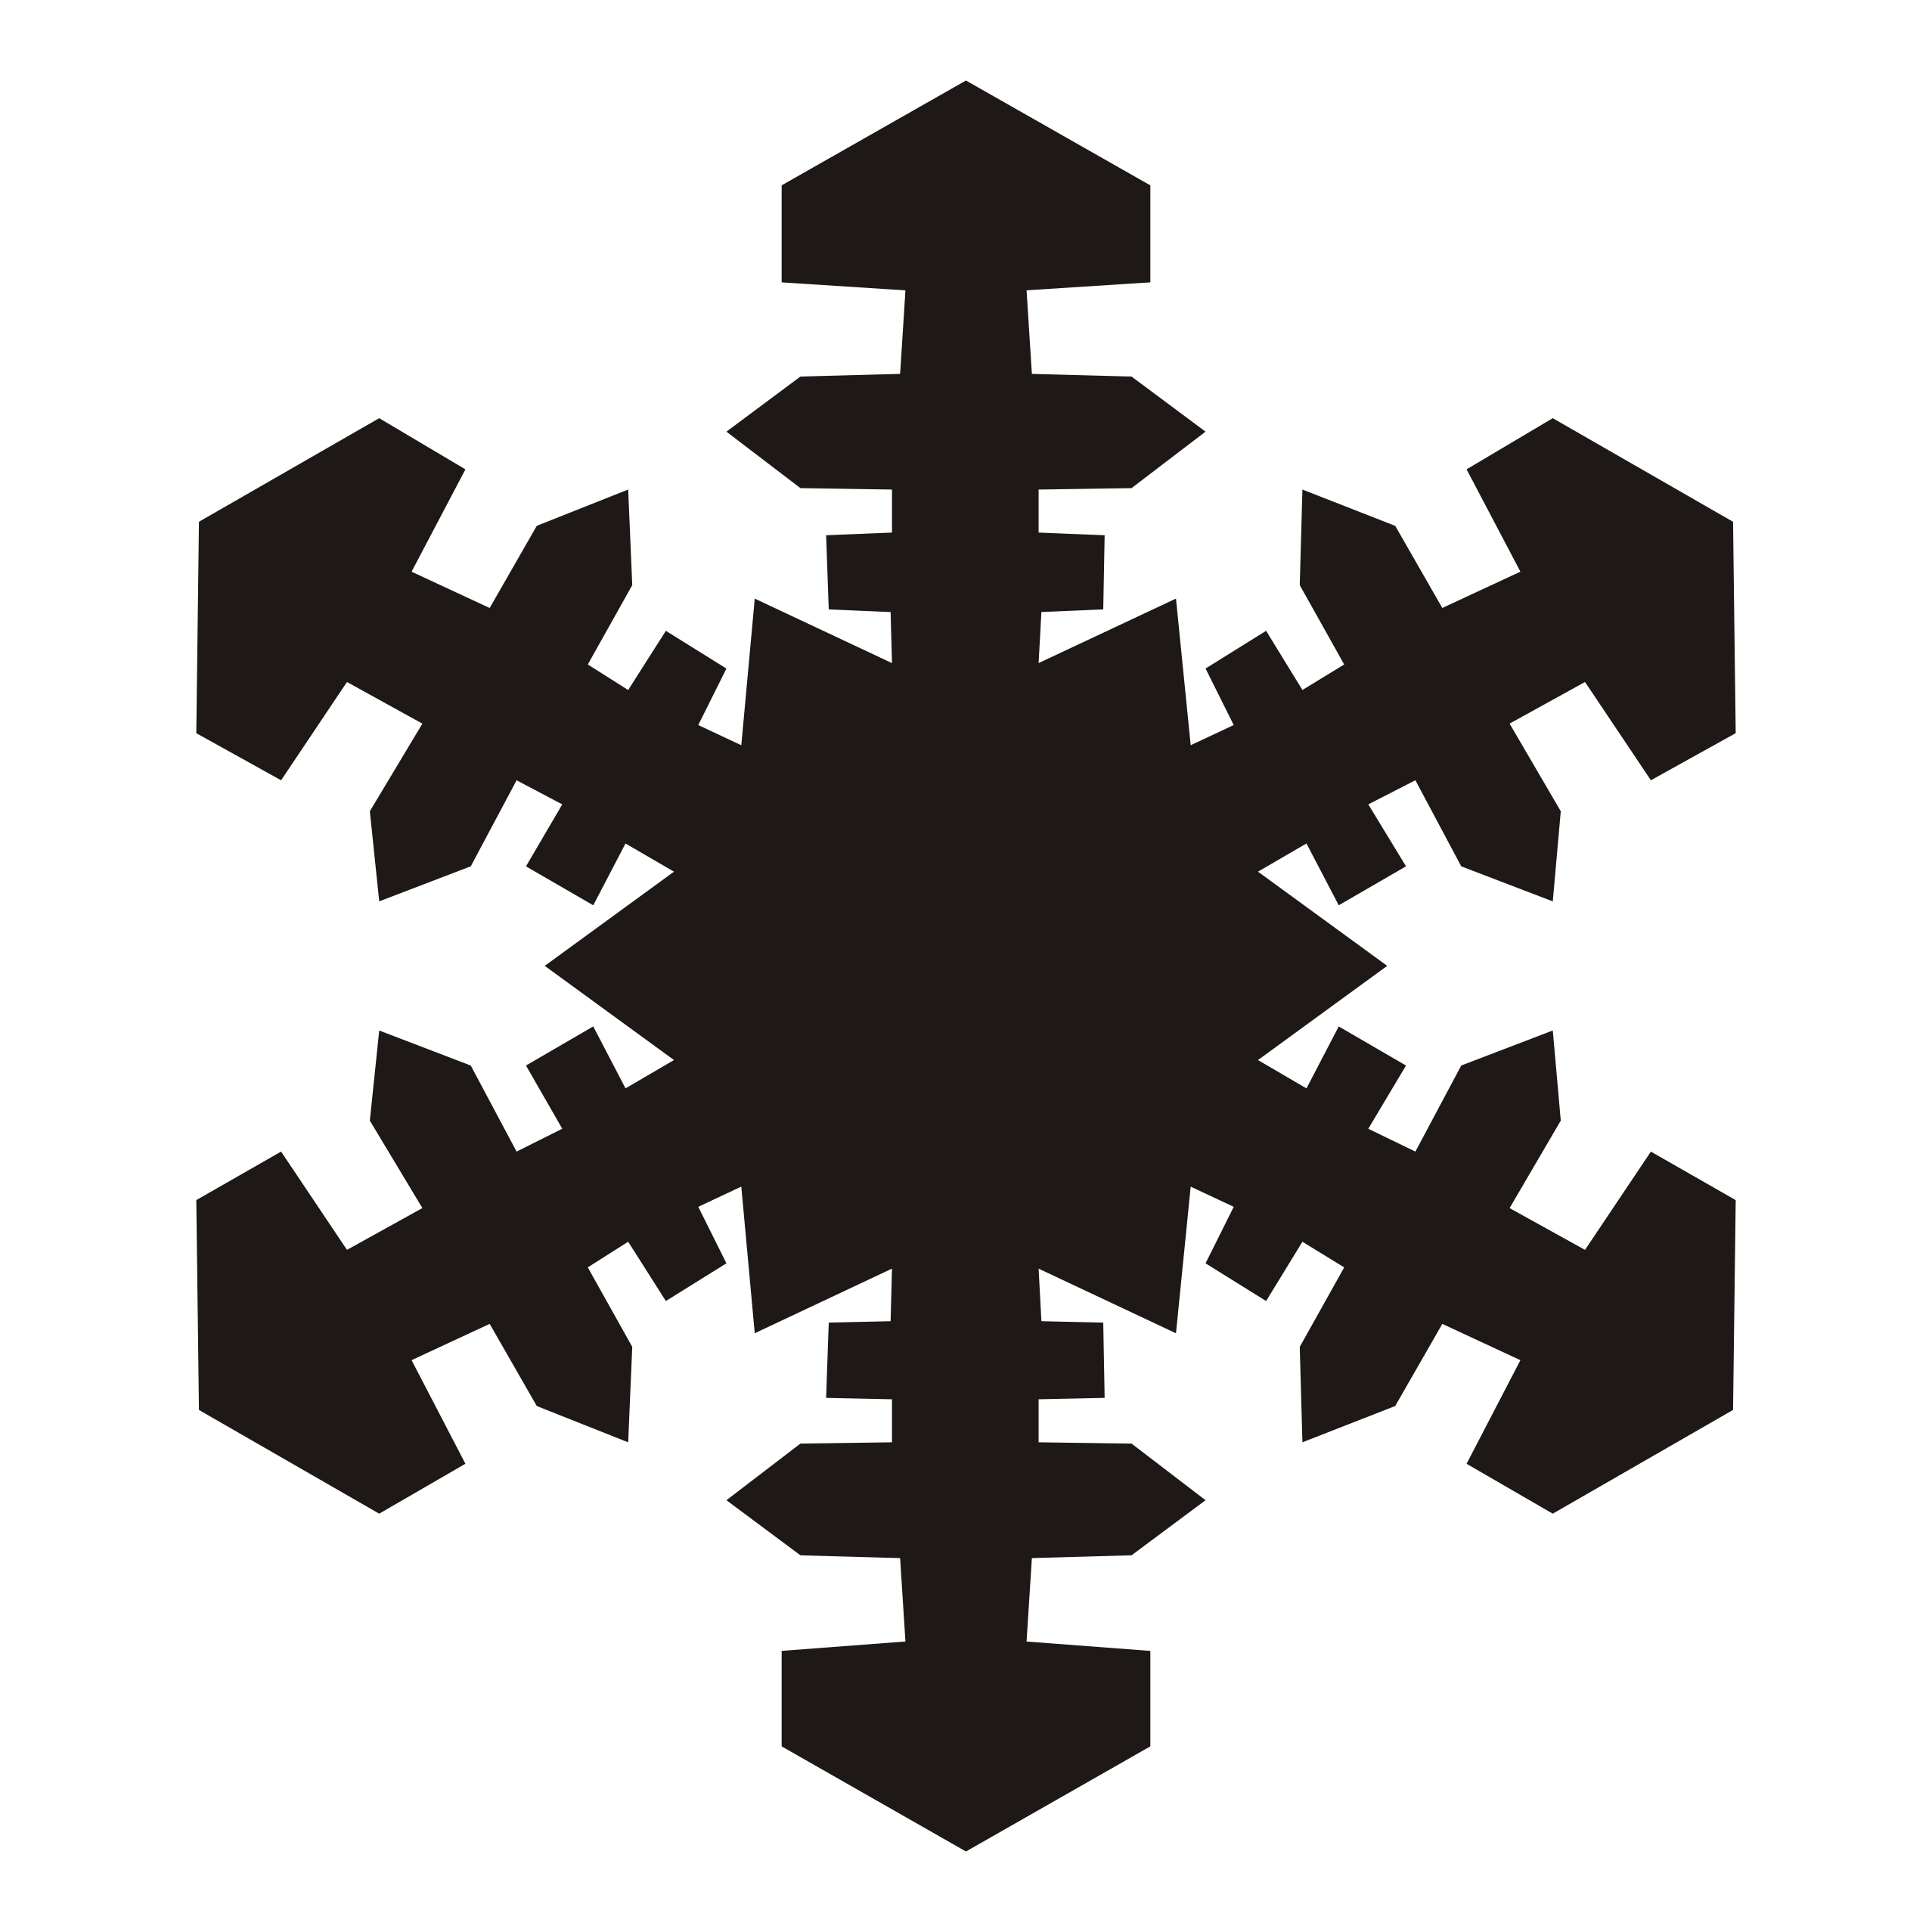 Snowflakes png black. Free and white snowflake